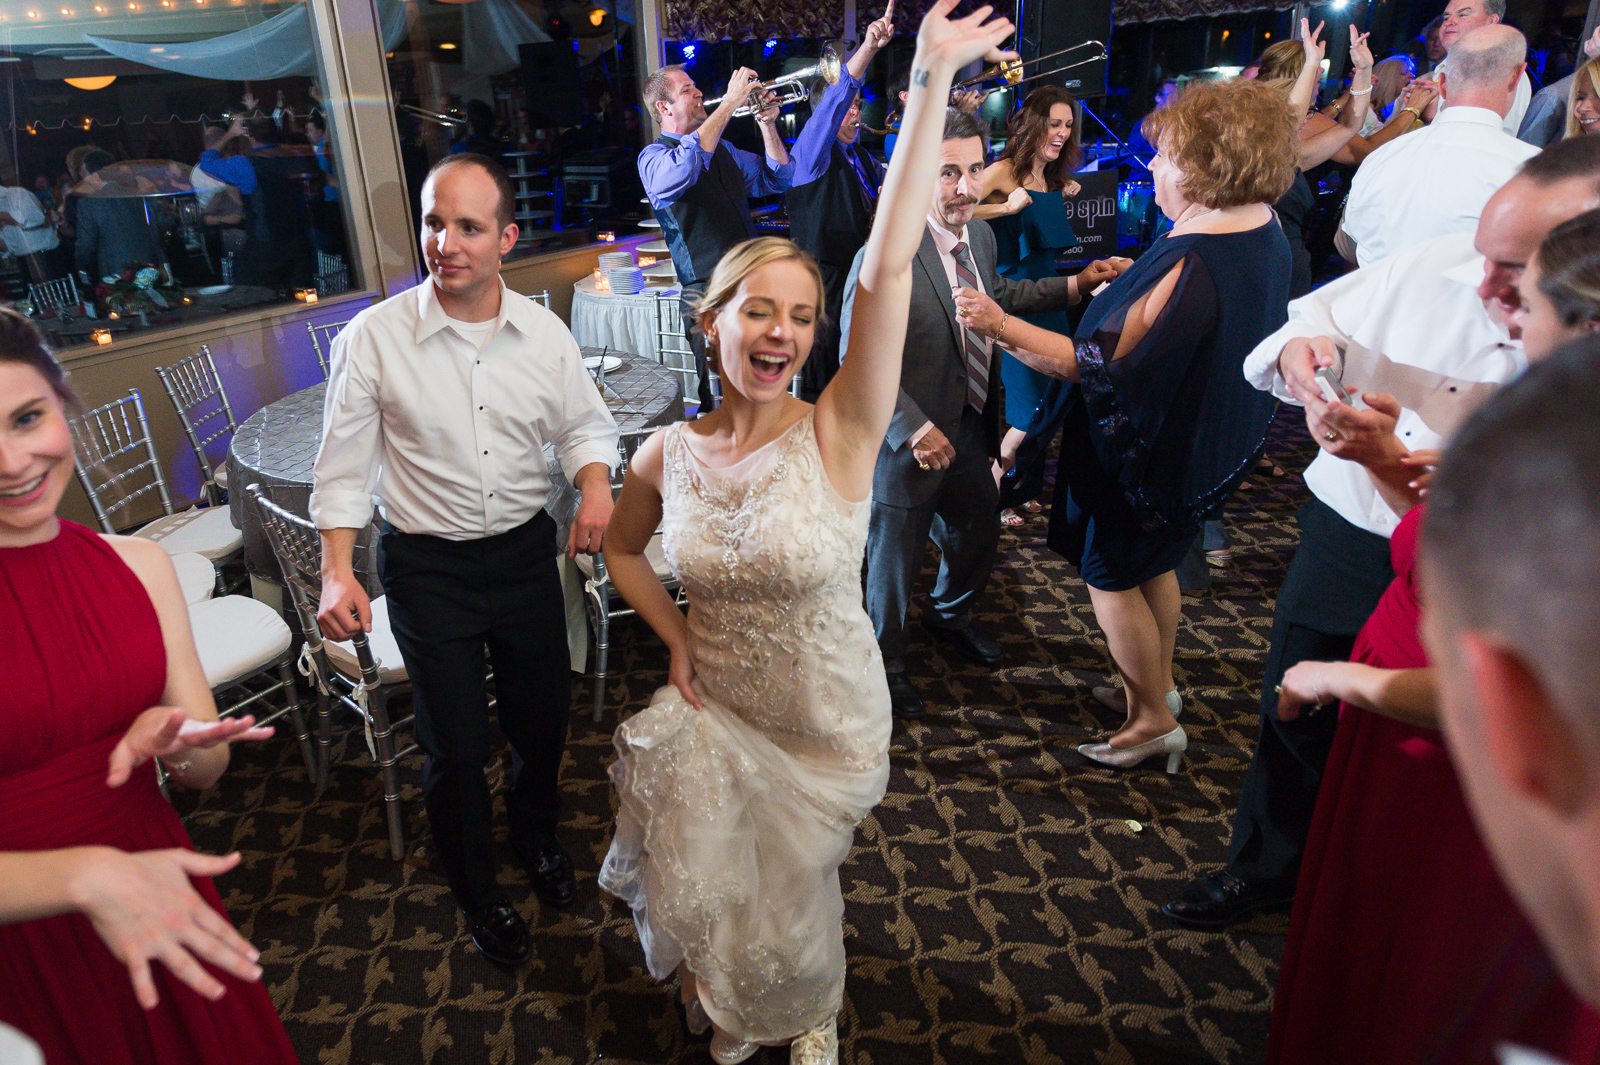 Scranton-clarks-summit-wedding-glen-oaks-contry-club-wedding-photographer-steven-serge-113.jpg